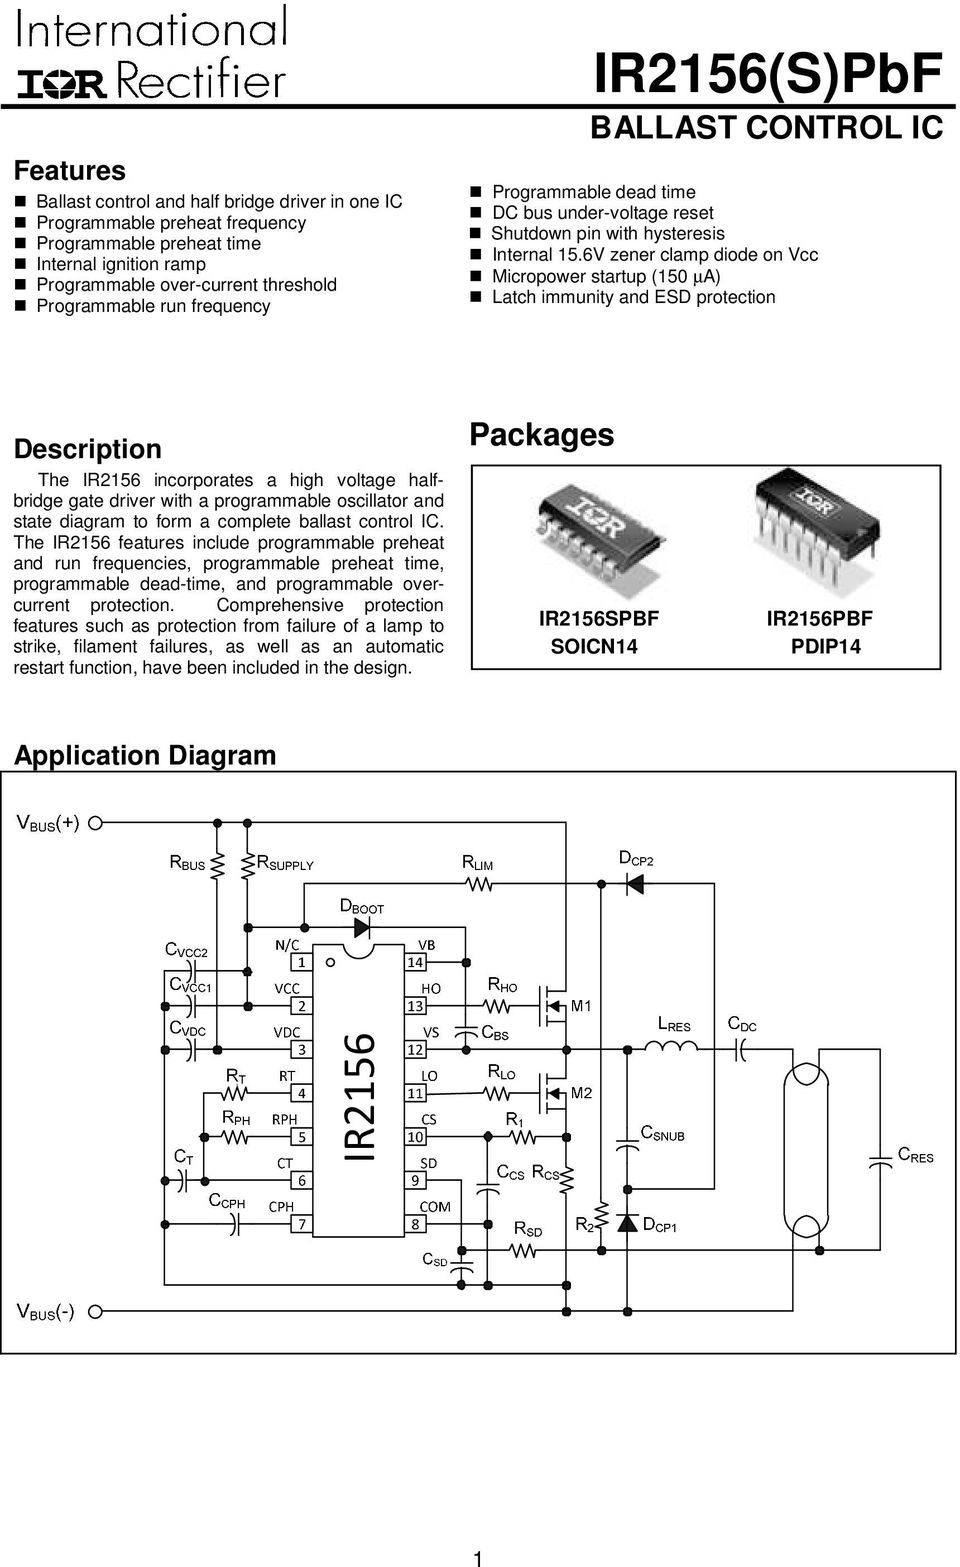 hight resolution of 6v zener clamp diode on vcc micropower startup 150 a latch immunity and esd